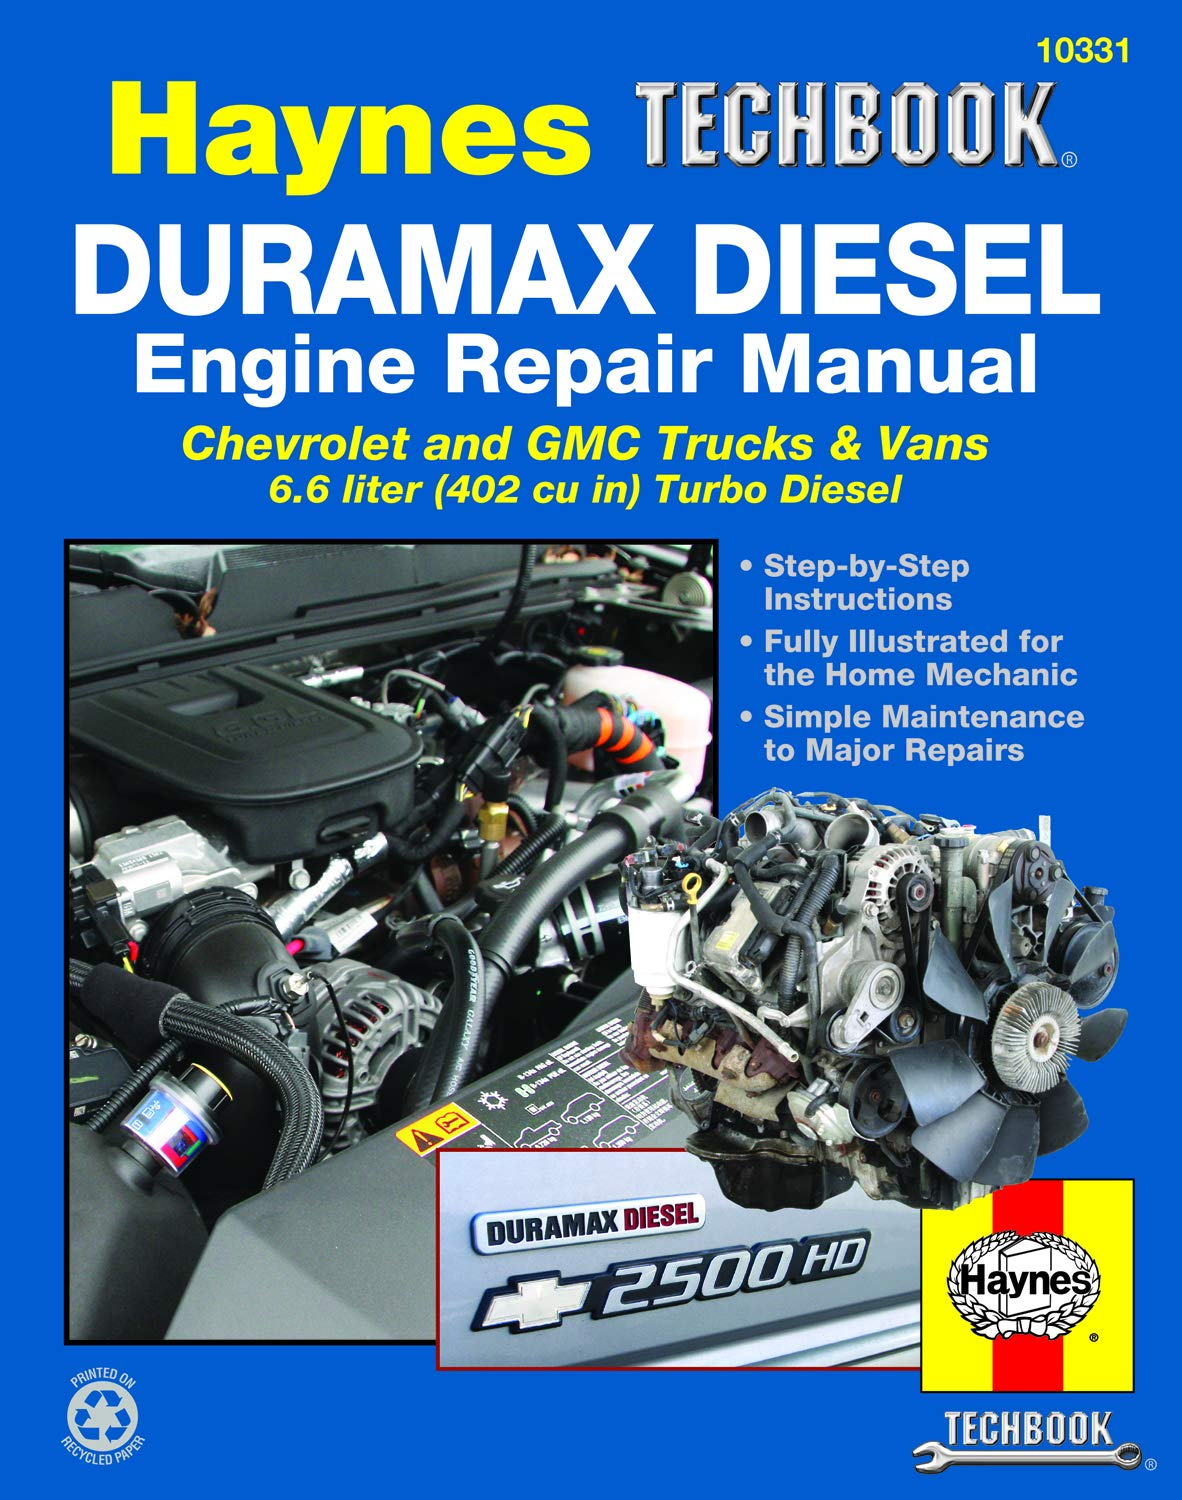 duramax diesel engine repair manual: chrevrolet and gmc trucks & vans 6 6  liter (402 cu in) turbo diesel paperback – oct 15 2013